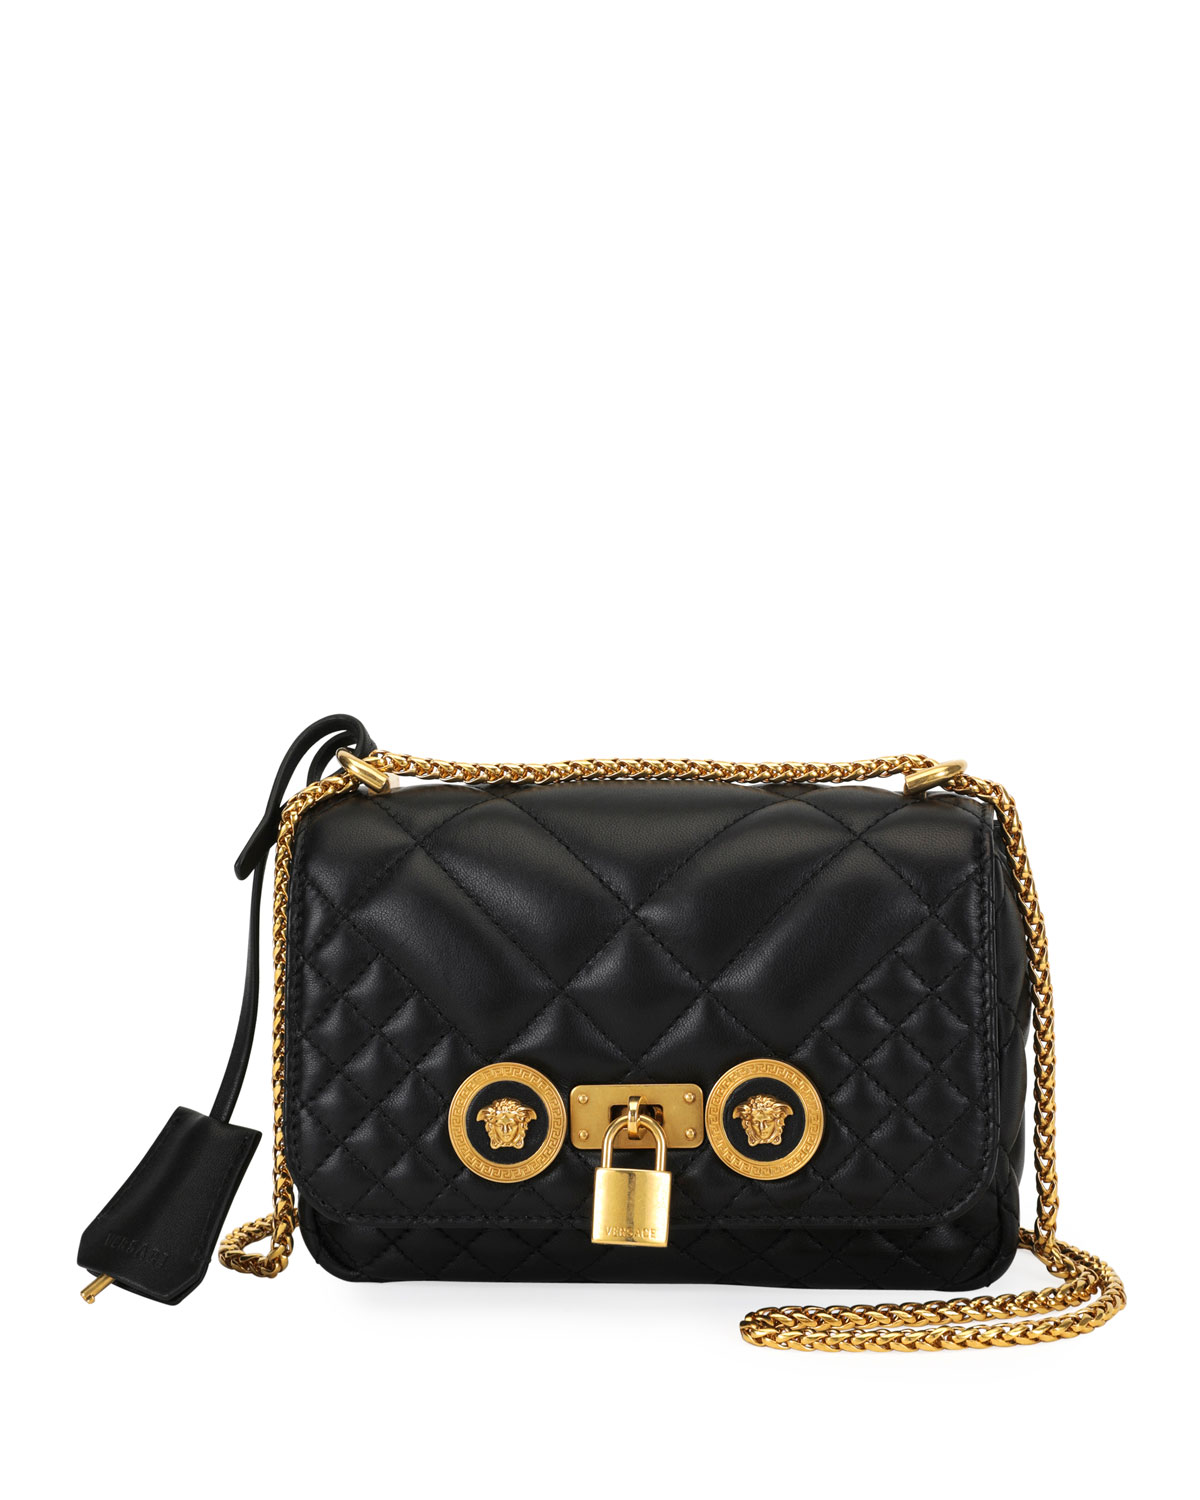 d908f8ac79 VersaceIcon Small Quilted Napa Leather Crossbody Bag with Medusa Detail